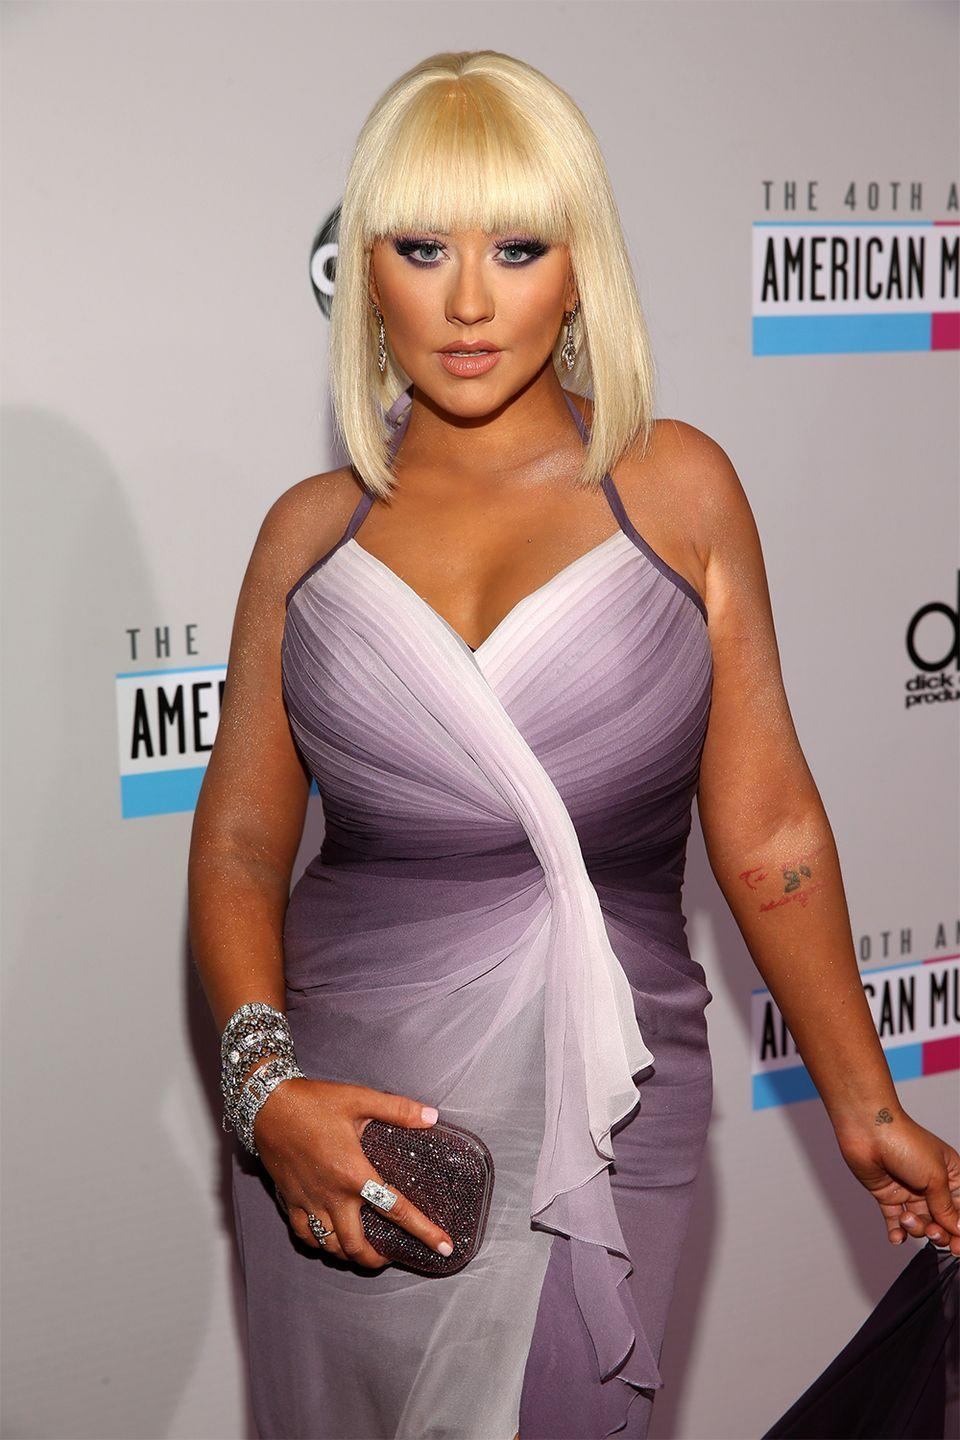 """<p>The singer got inked after she got hitched to Jordan Bratman. For her happily ever tattoo, she chose to have his initials written on her inner arm in Hebrew. However, they filed for divorce in 2010, and Aguilera was left with the ink. Turns out <a href=""""https://www.yahoo.com/entertainment/photos/the-voice-tattoos-the-judges-regret-getting-slideshow/christina-aguilera-photo-1330128363.html"""" data-ylk=""""slk:the combination of characters;outcm:mb_qualified_link;_E:mb_qualified_link;ct:story;"""" class=""""link rapid-noclick-resp yahoo-link"""">the combination of characters</a> she got actually means """"12"""" in Hebrew, not """"JB."""" It seems like Xtina might have lucked out this time.</p>"""